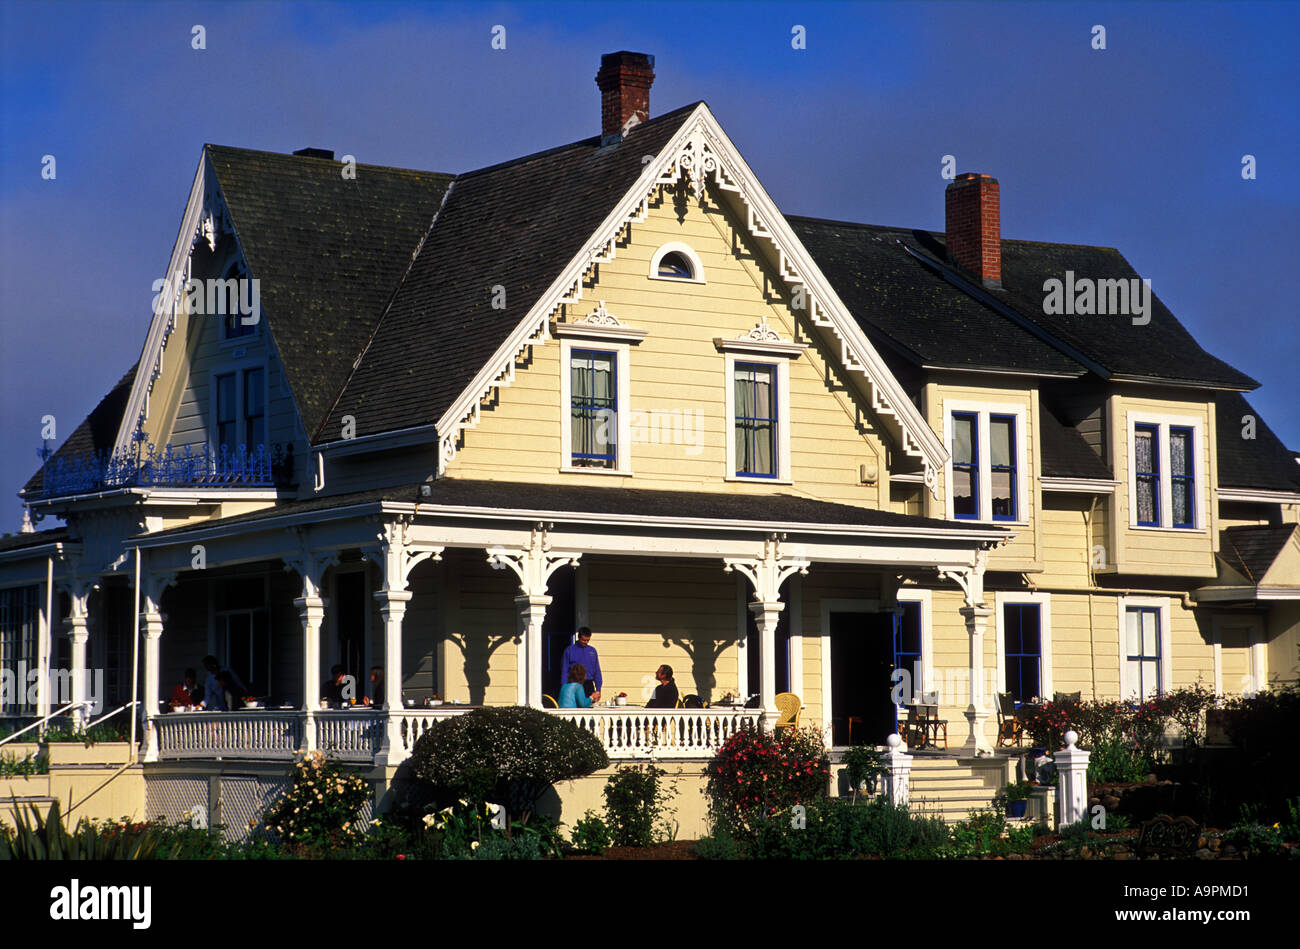 USA California Mendocino Victorian house used as a bed and breakfast - Stock Image